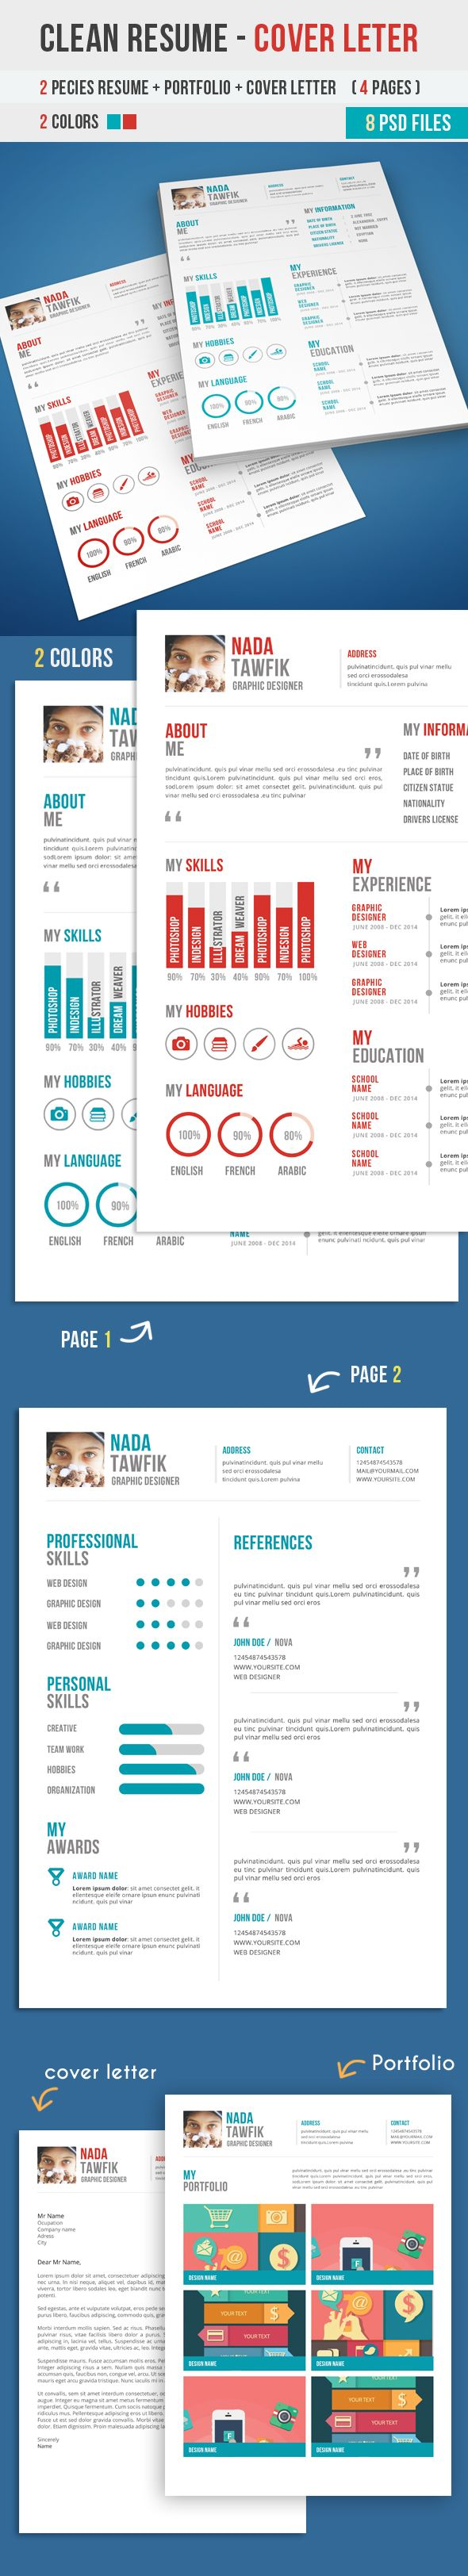 45 best CV/Resume templates images on Pinterest | Cv template, Cv ...